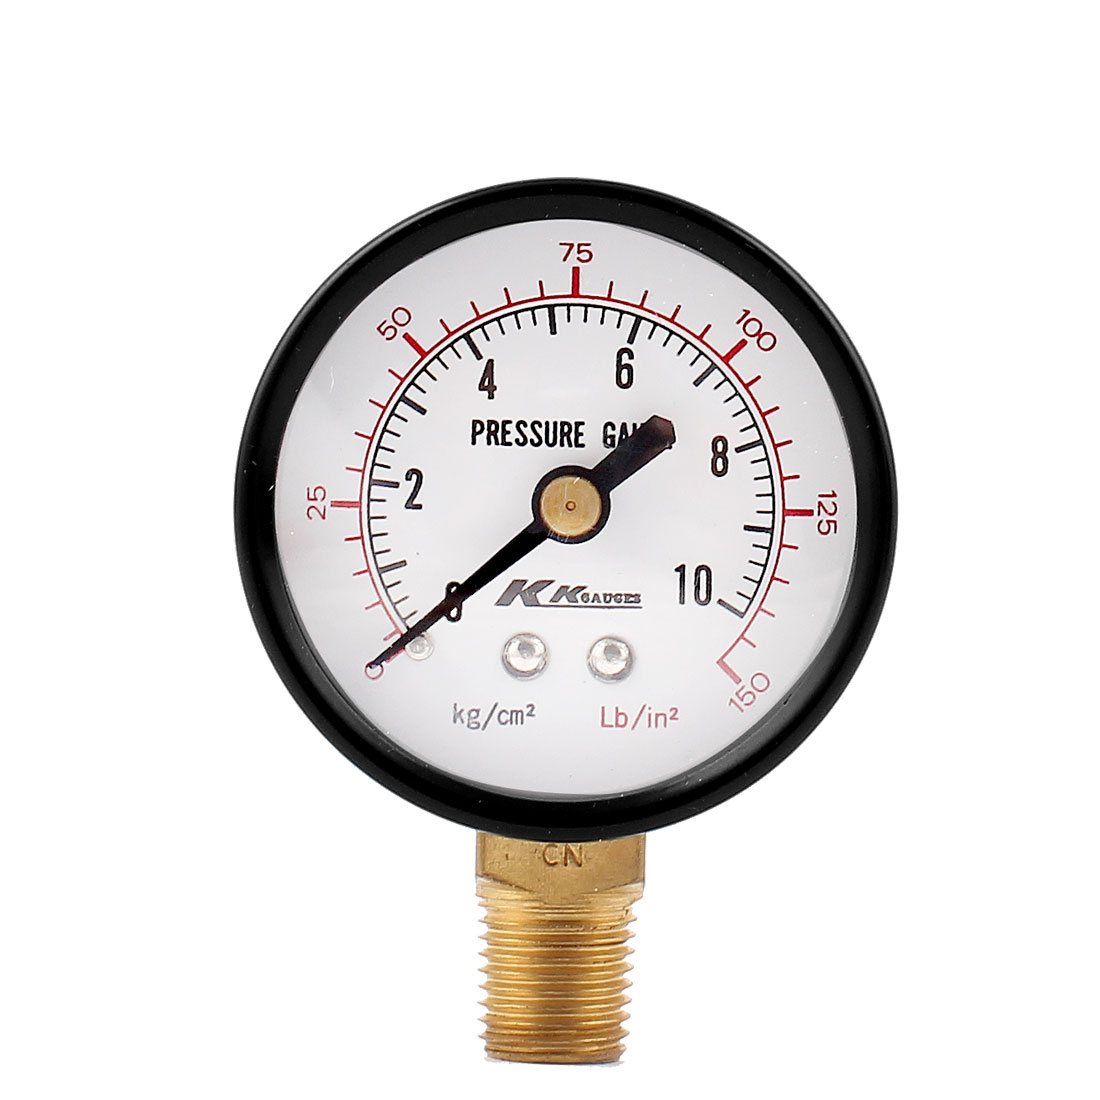 13mm 1/4BSP Male Thread Horizontal Mount Water Air Compressor Pressure Gauge Meter 0-150PSI 10kg/cm2